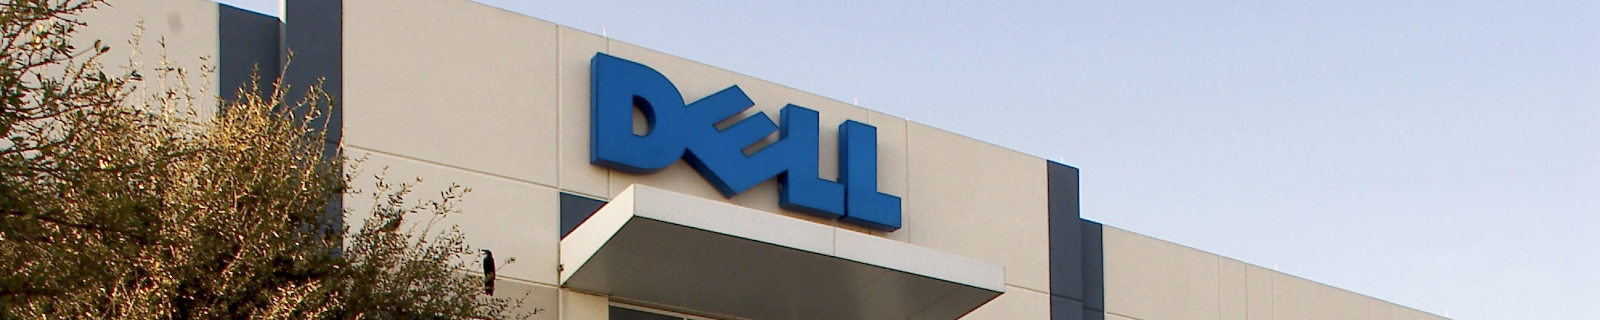 Dell Banner Image